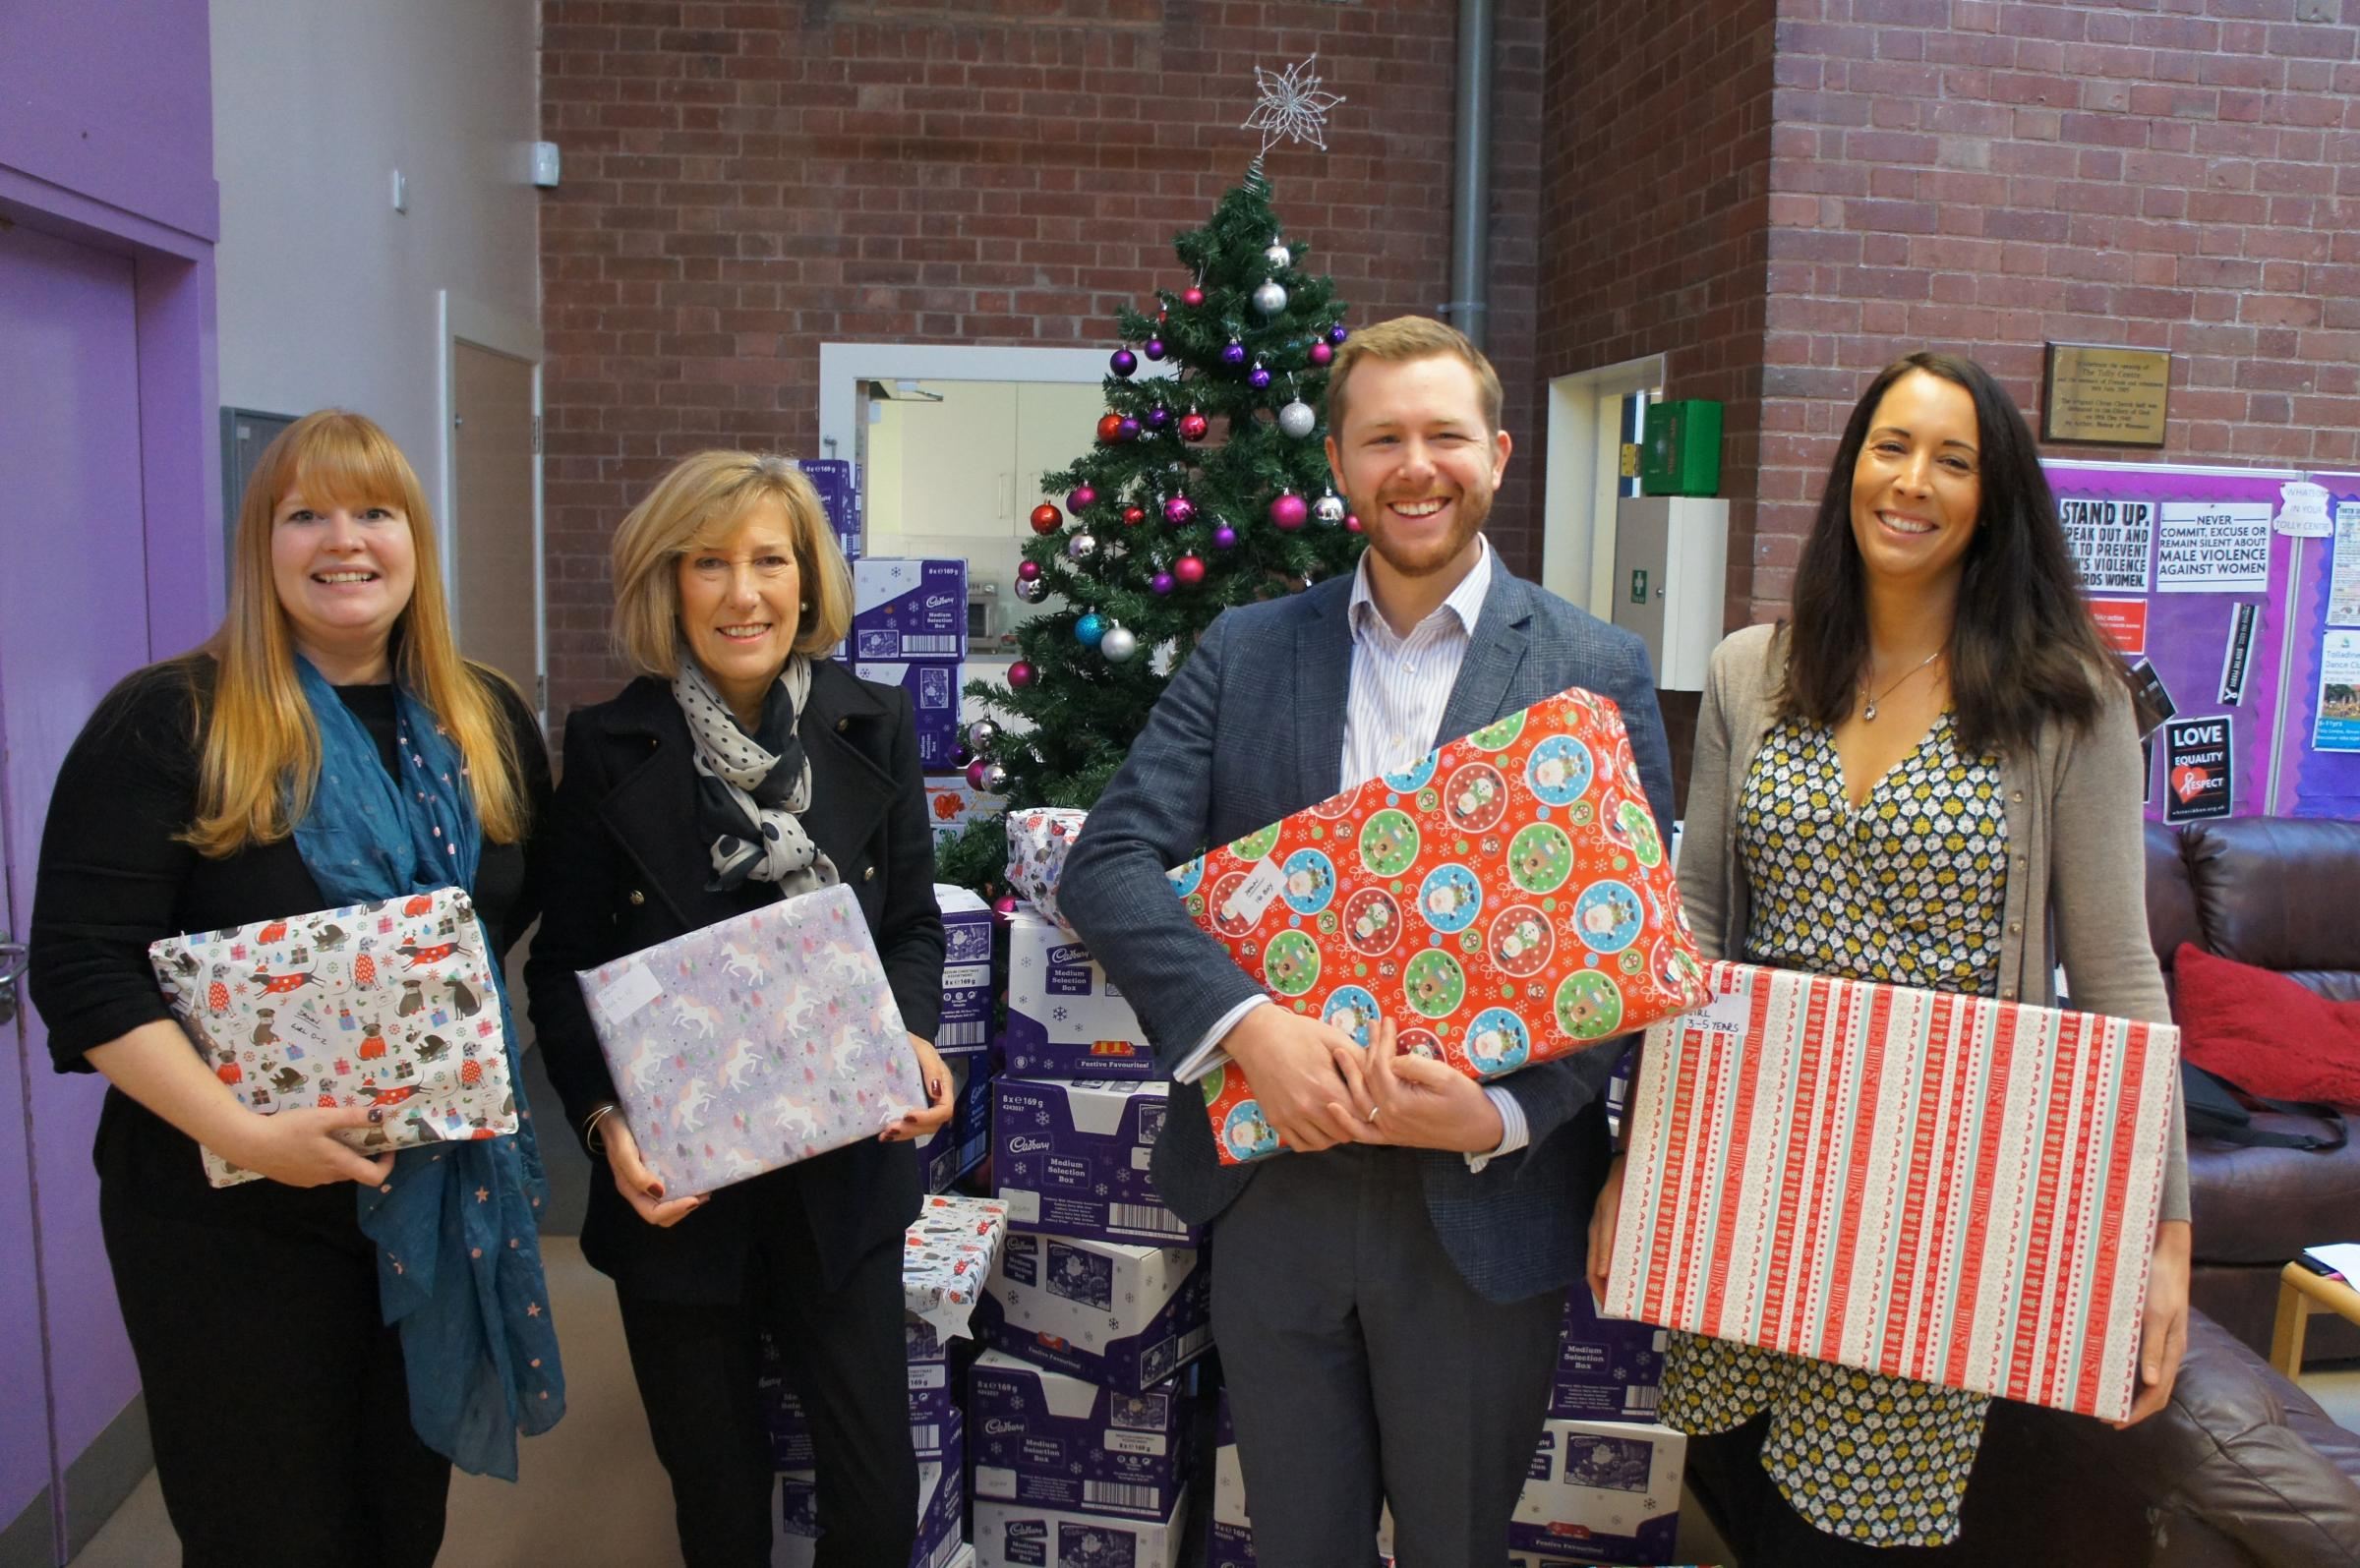 GIFTS: (Left to right) Ruth Sanderson from WCT, Pauline Coombes and Ben Allman from Ballards and Ruth Heywood from WCT